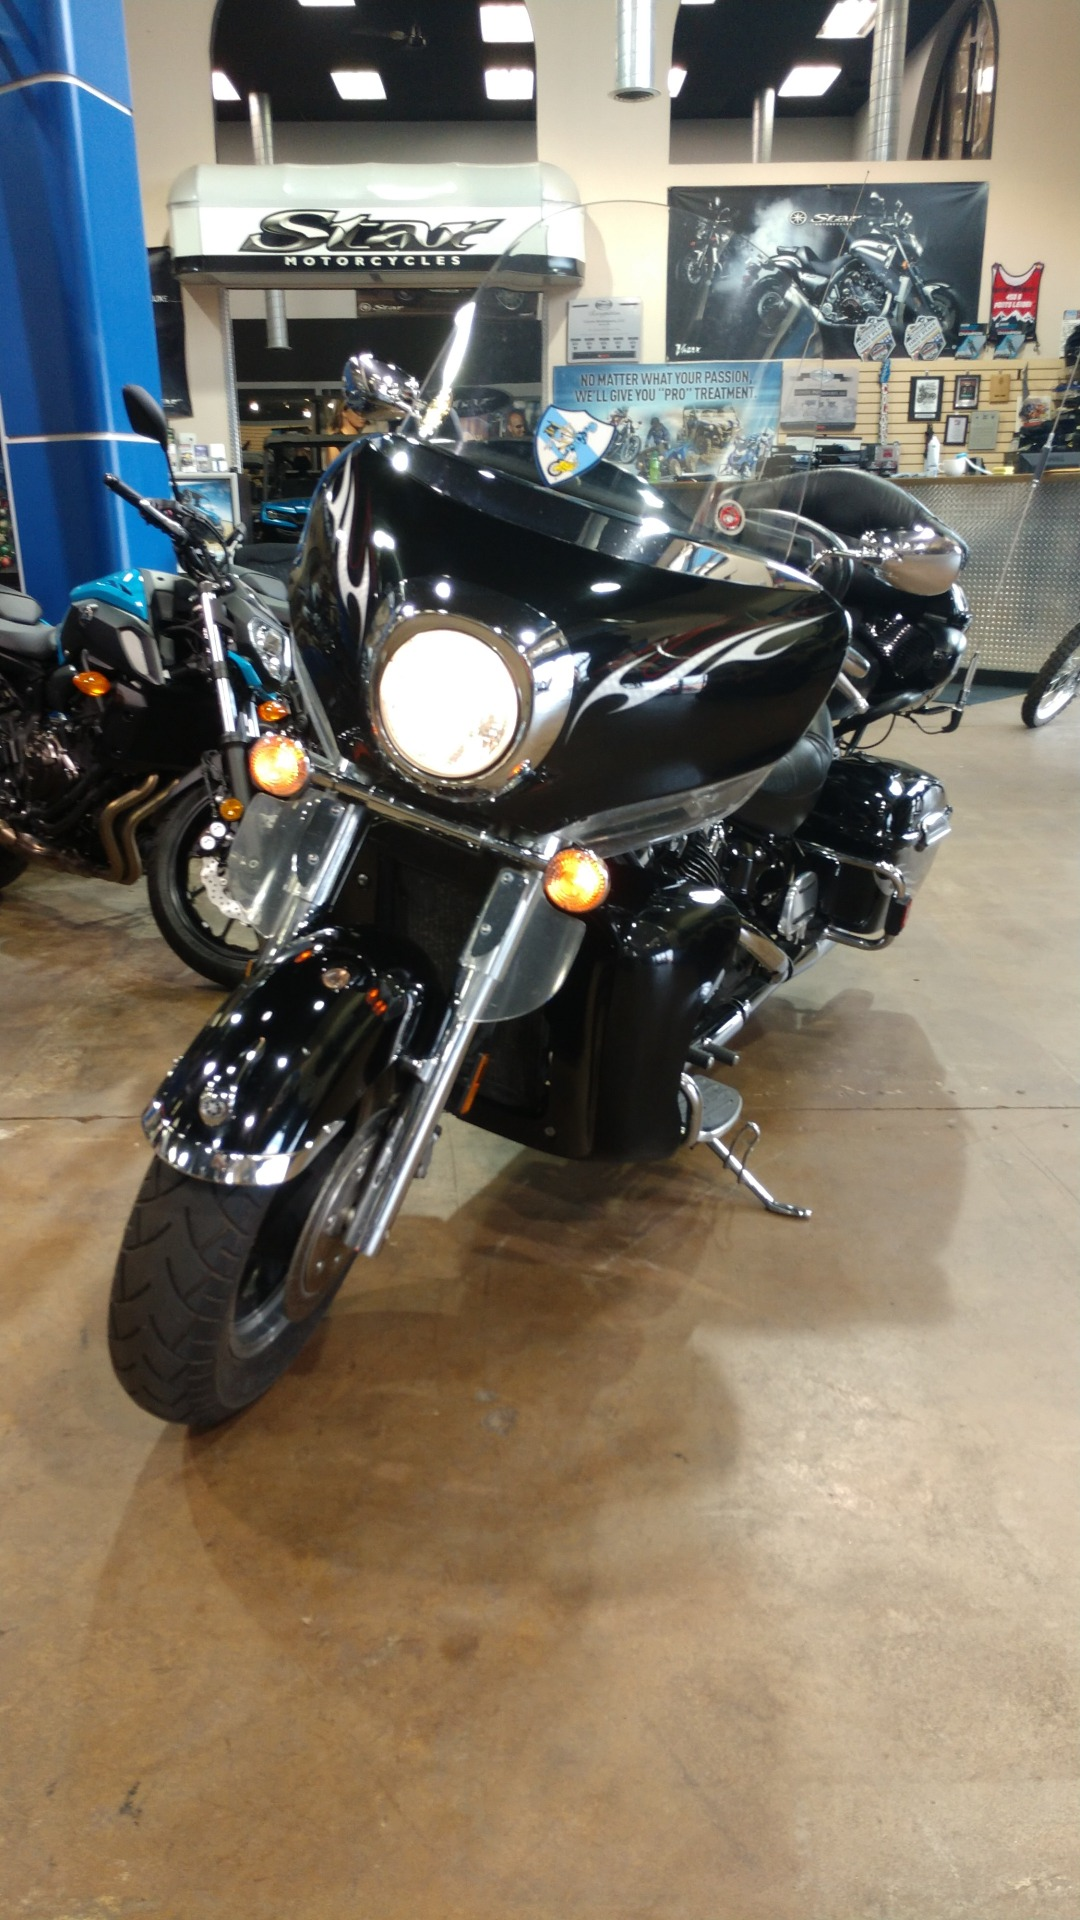 2010 Yamaha Royal Star Venture S in Denver, Colorado - Photo 4